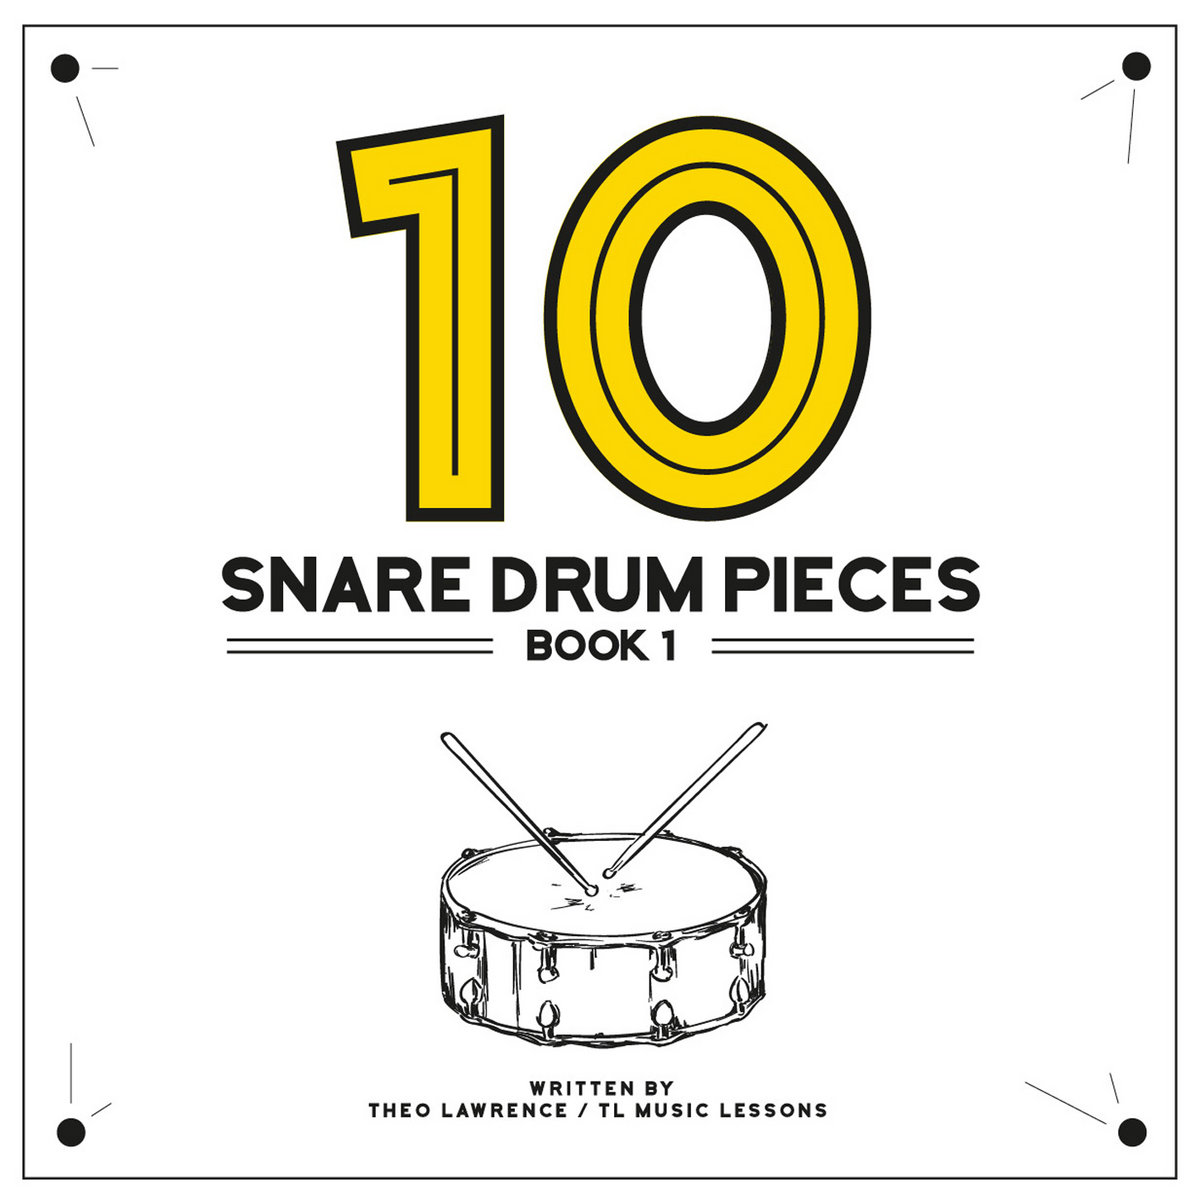 10 Snare Drum Pieces - Book 1 - Audio & PDF Sheet Music Download